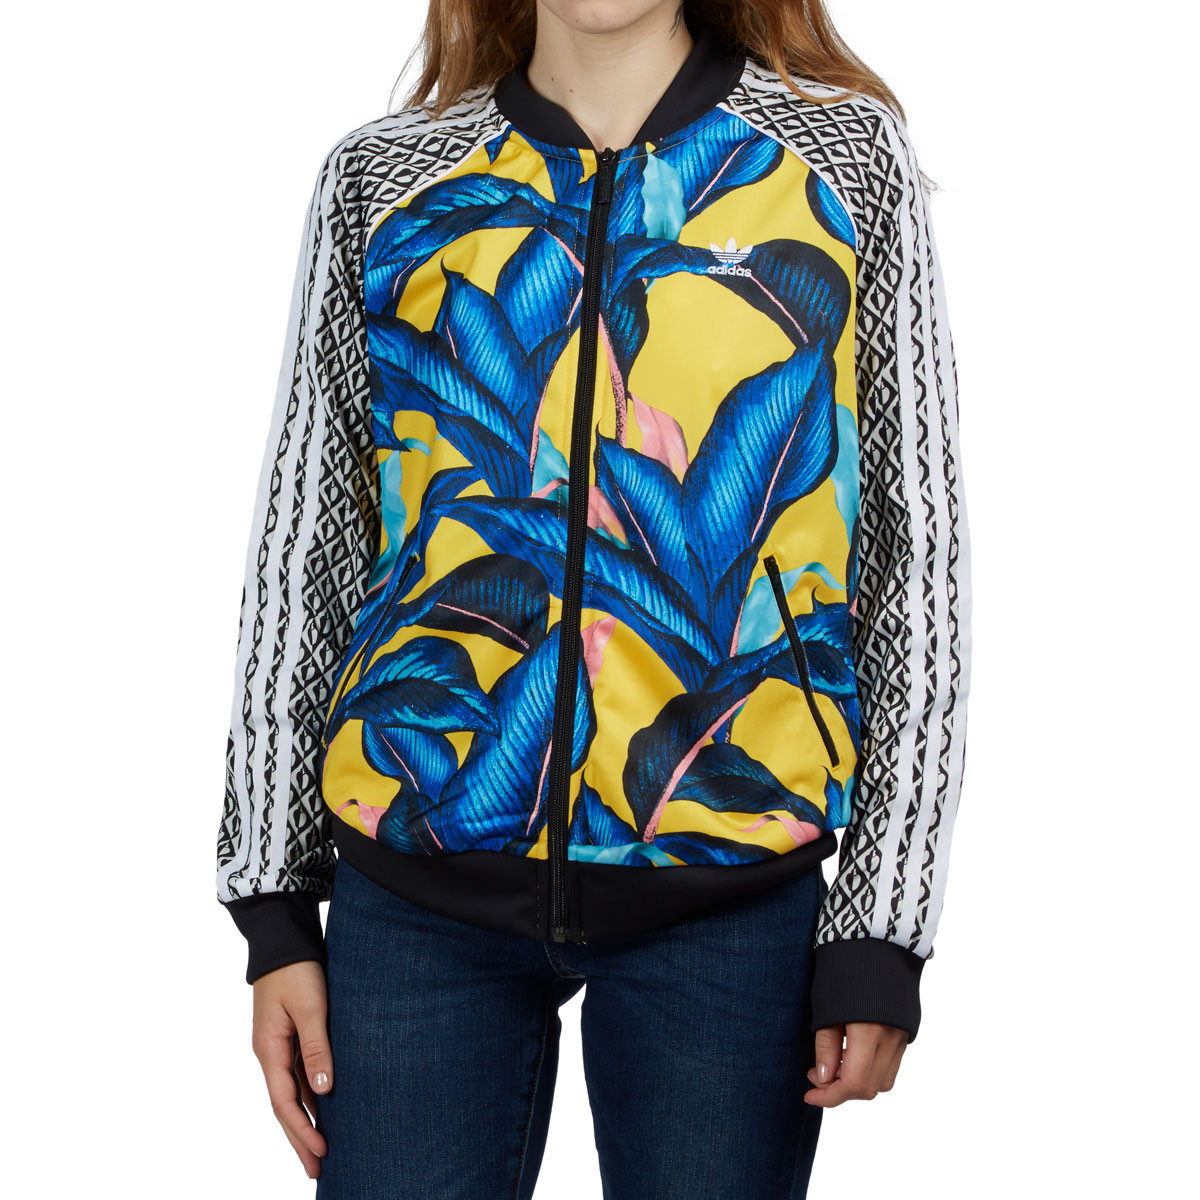 e3a32a3bbed1 Adidas SST Womens Track Jacket - Multicolor Blue